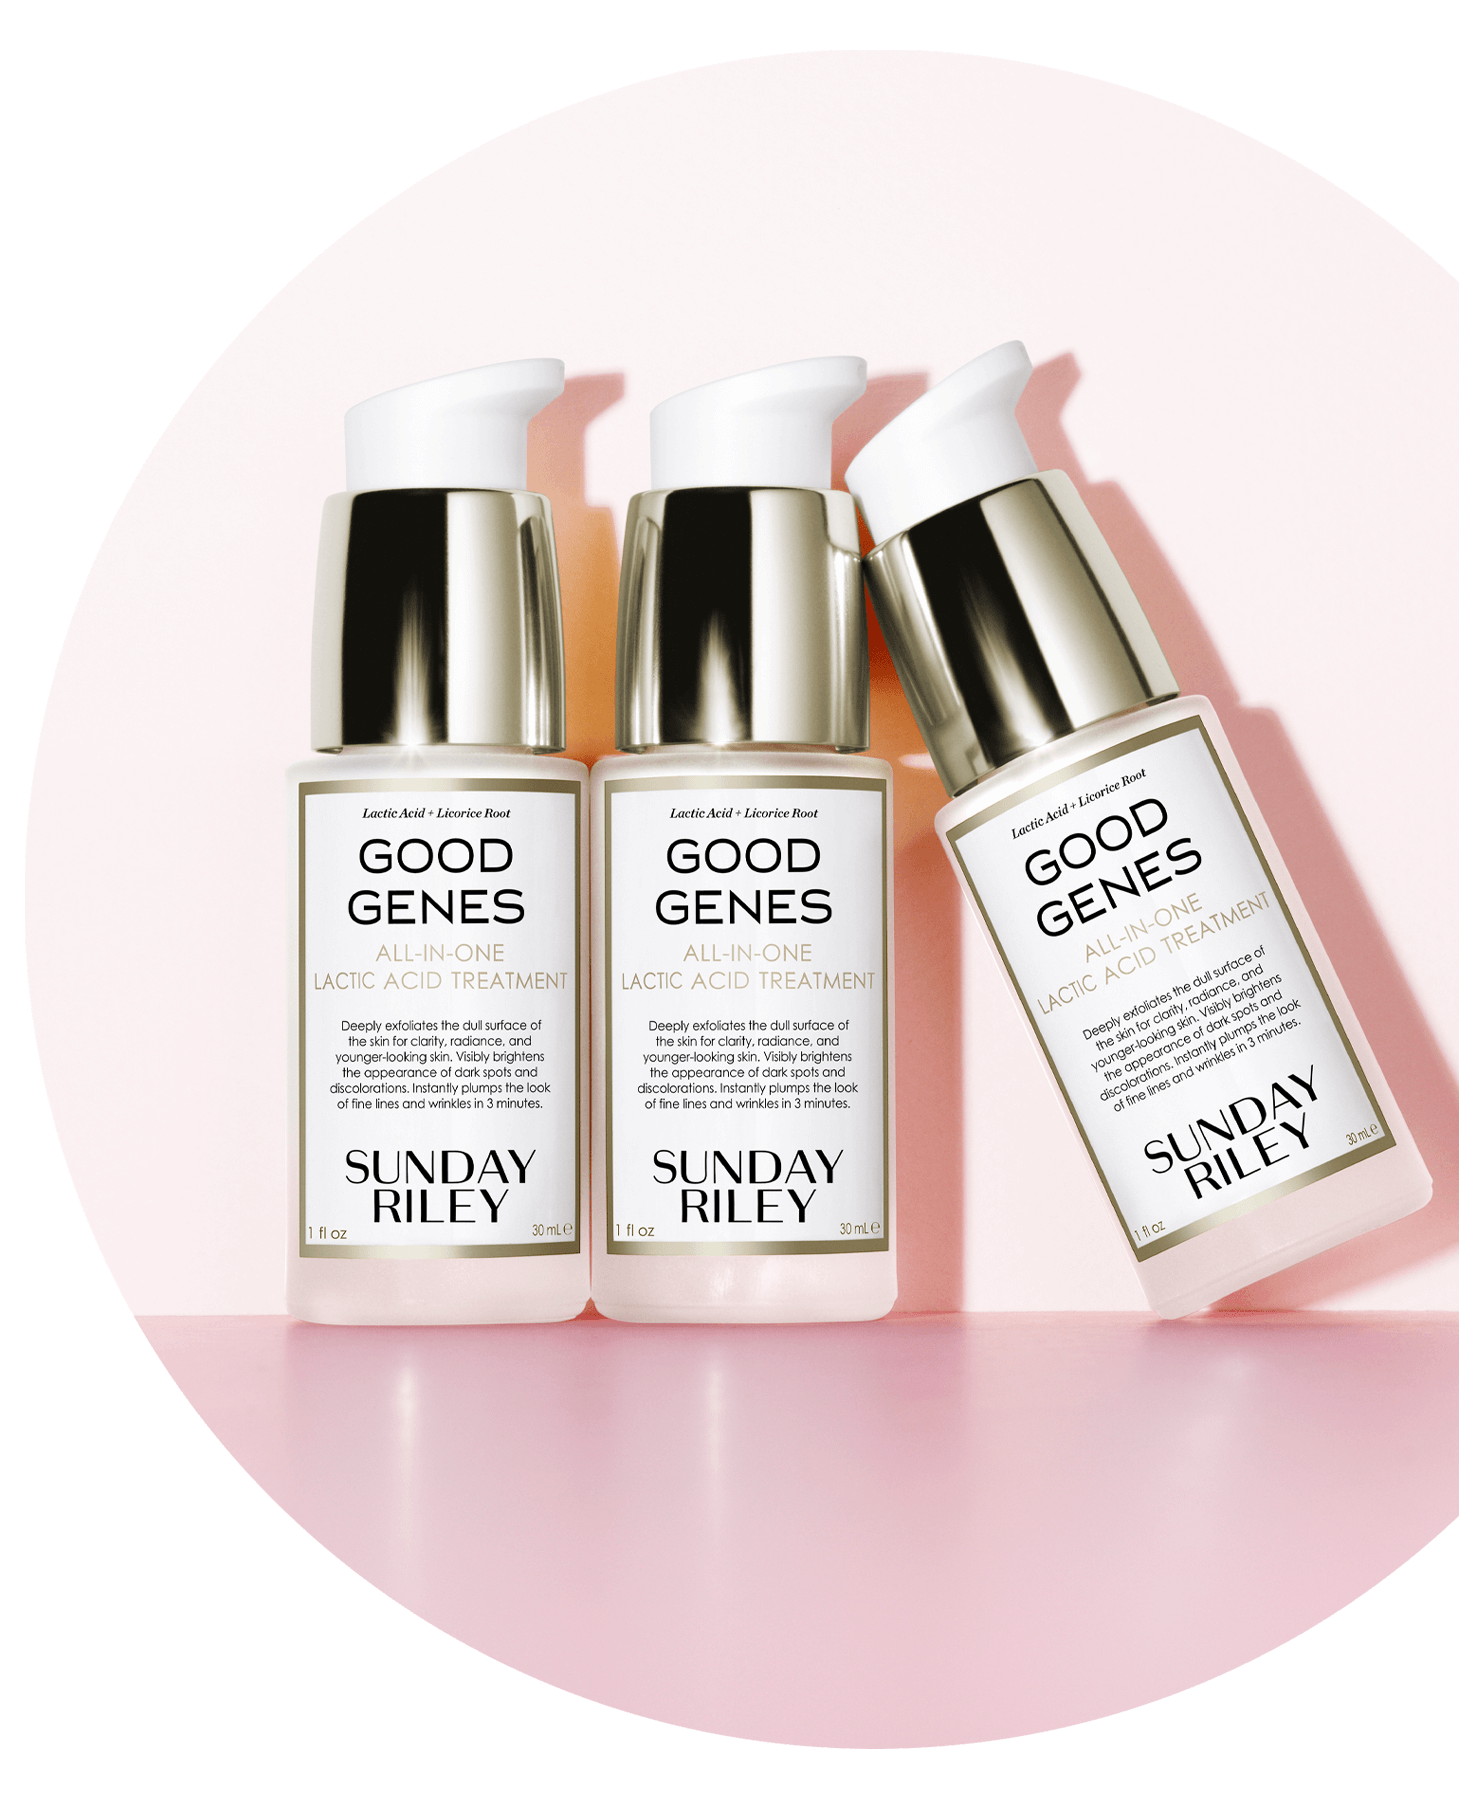 Three Good Genes Lactic Acid Treatment bottles (30ml) standing against a pink backdrop